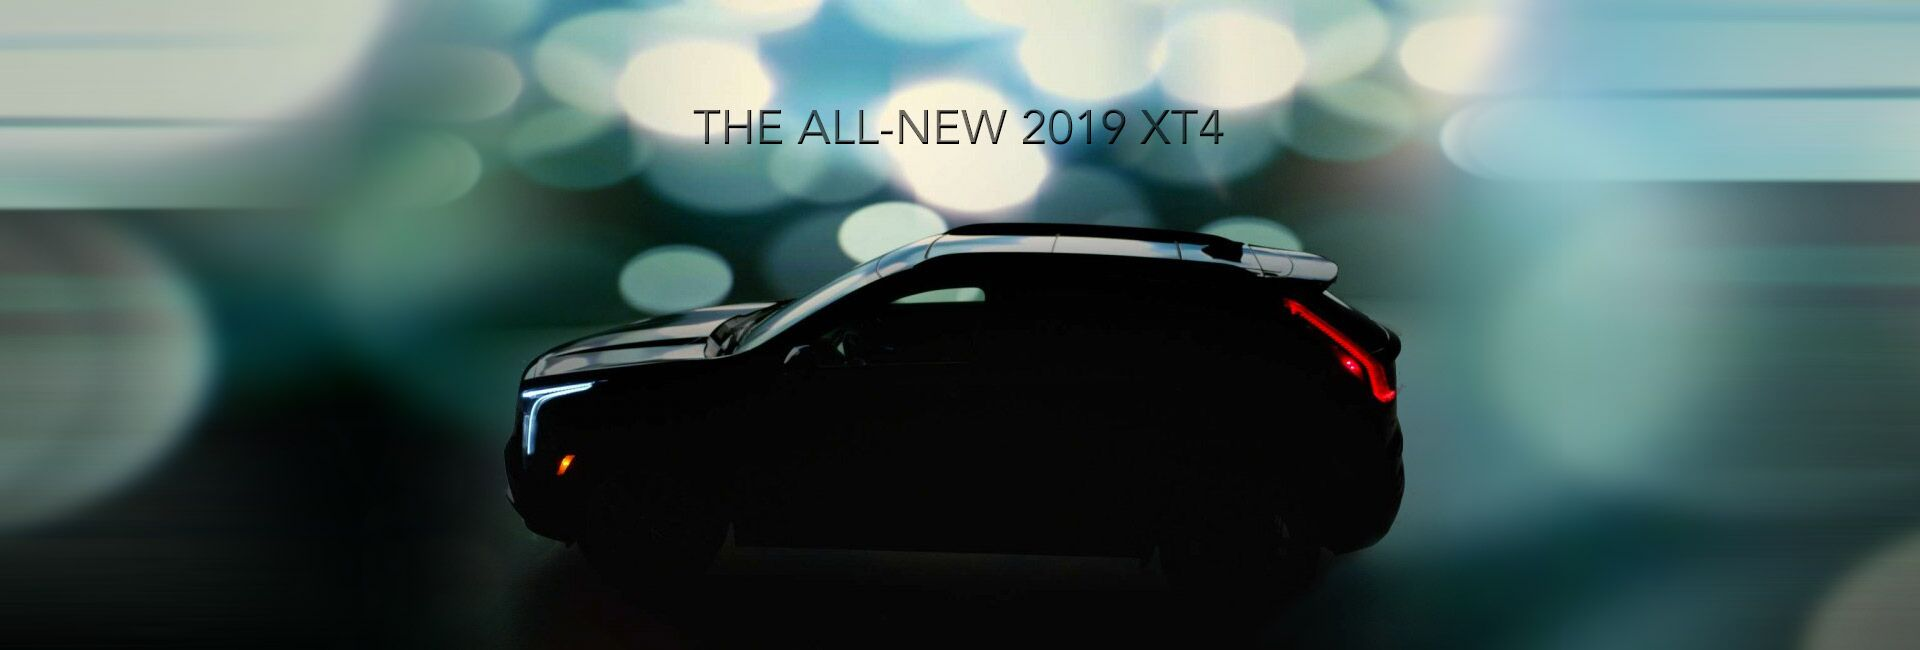 THE ALL-NEW 2019 XT4